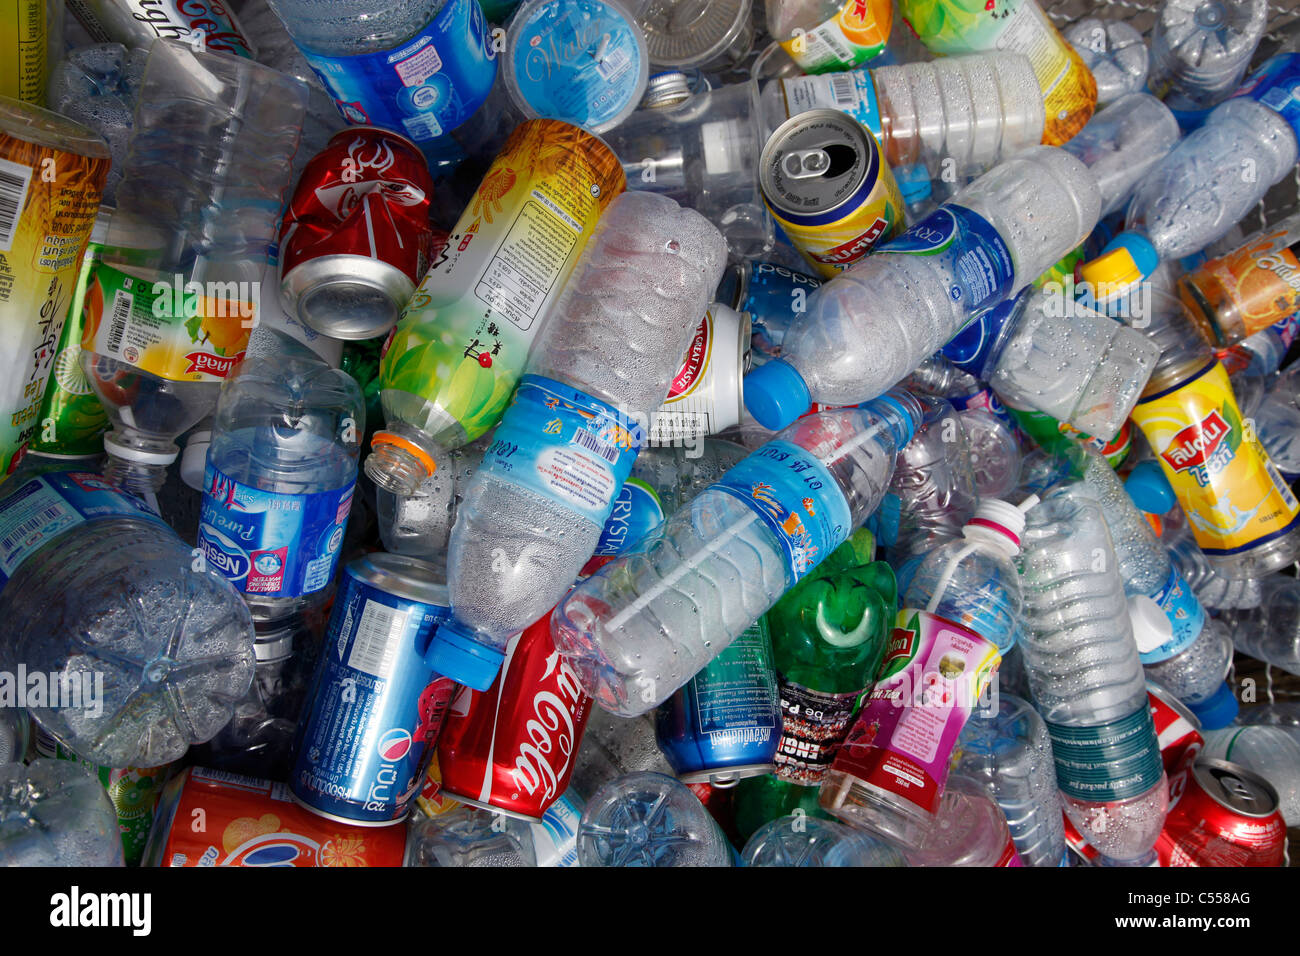 Plastic Bottles And Containers In A Rubbish Bin For